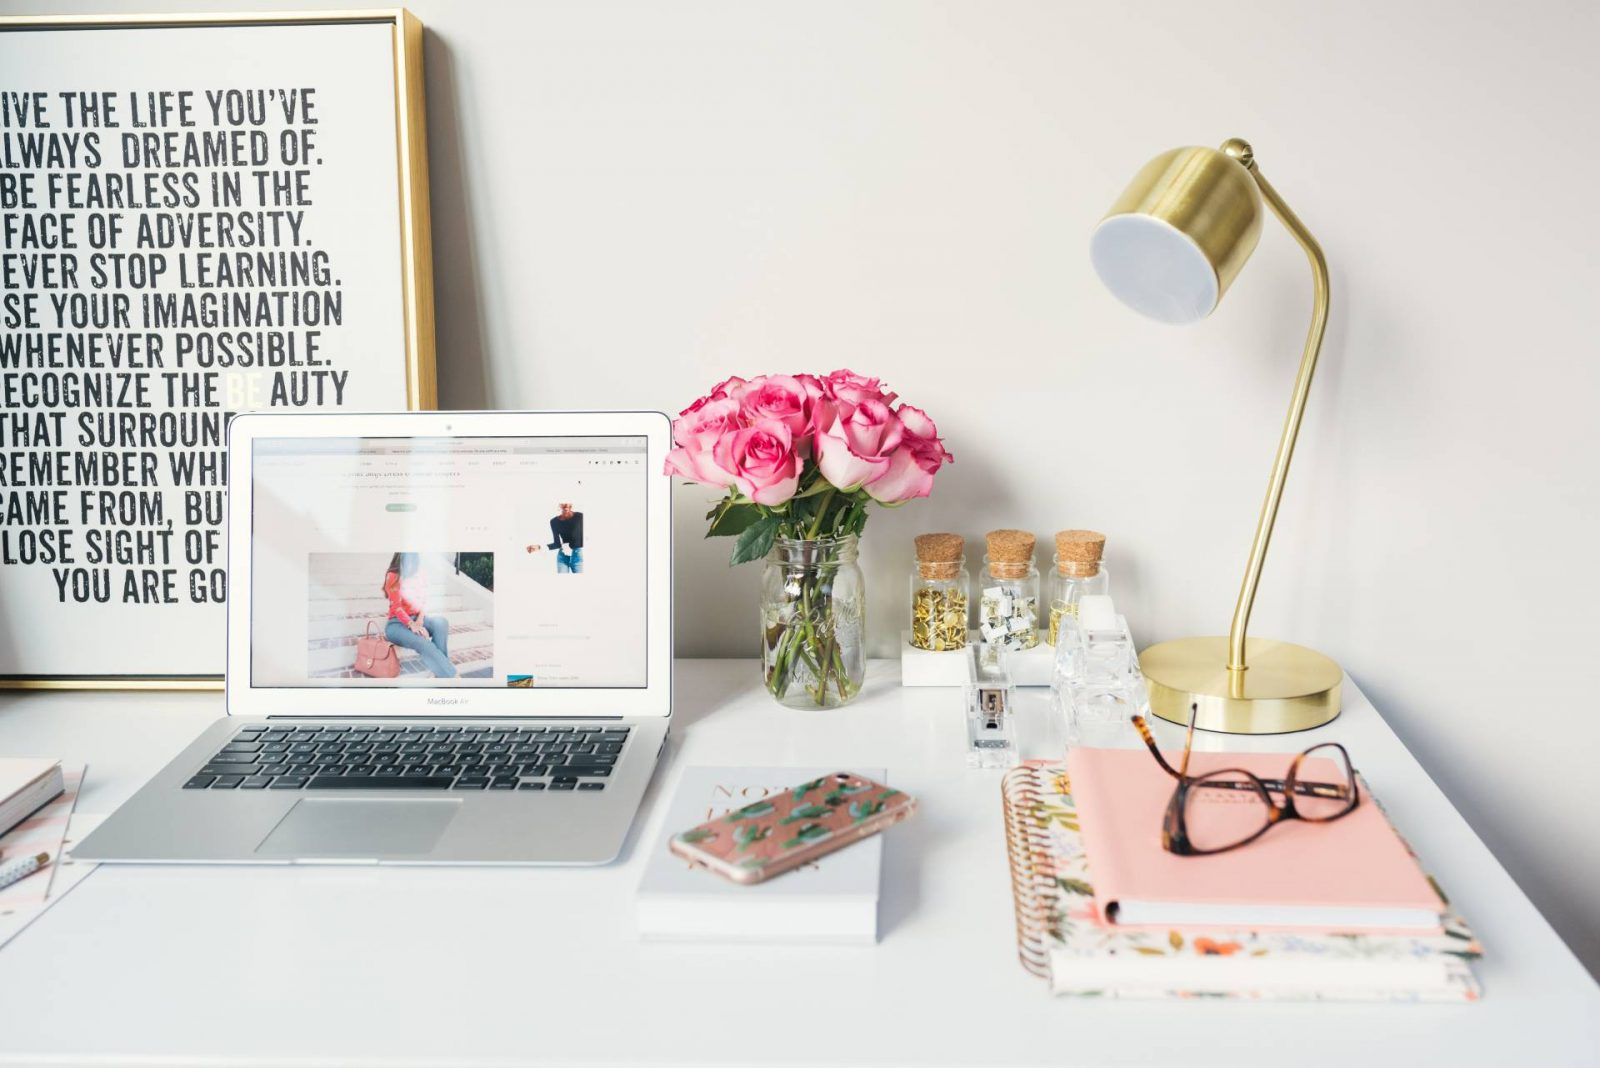 Do Bloggers Have More Influence Than Glossy Fashion Magazines? + Sunday Reflections Link Up